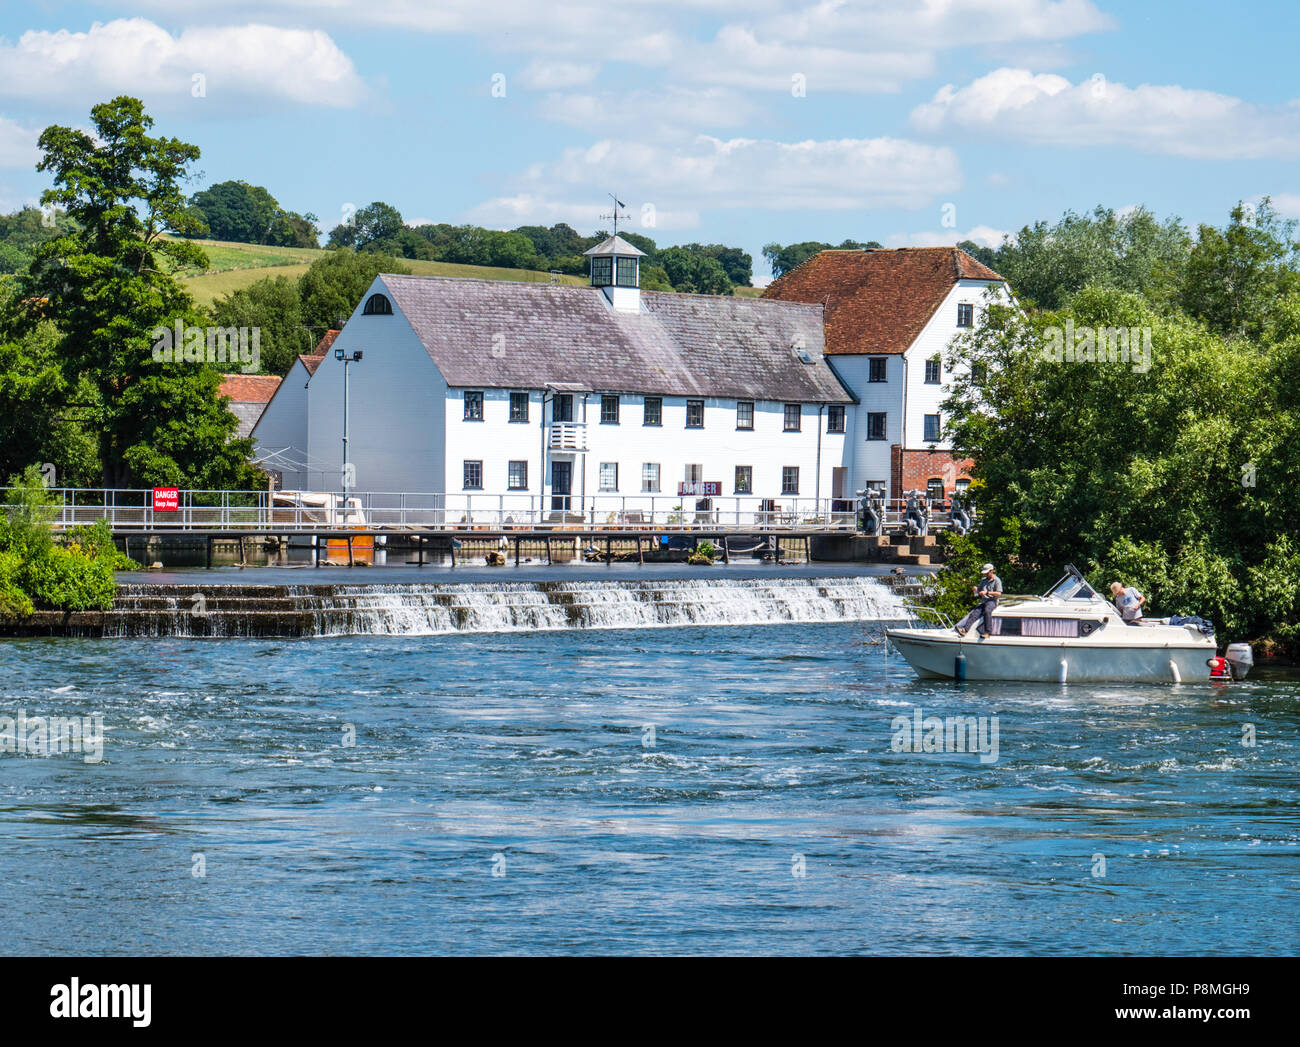 Mill End, Hambleden Lock and Weir, River Thames, Berkshire, England, UK, GB. - Stock Image